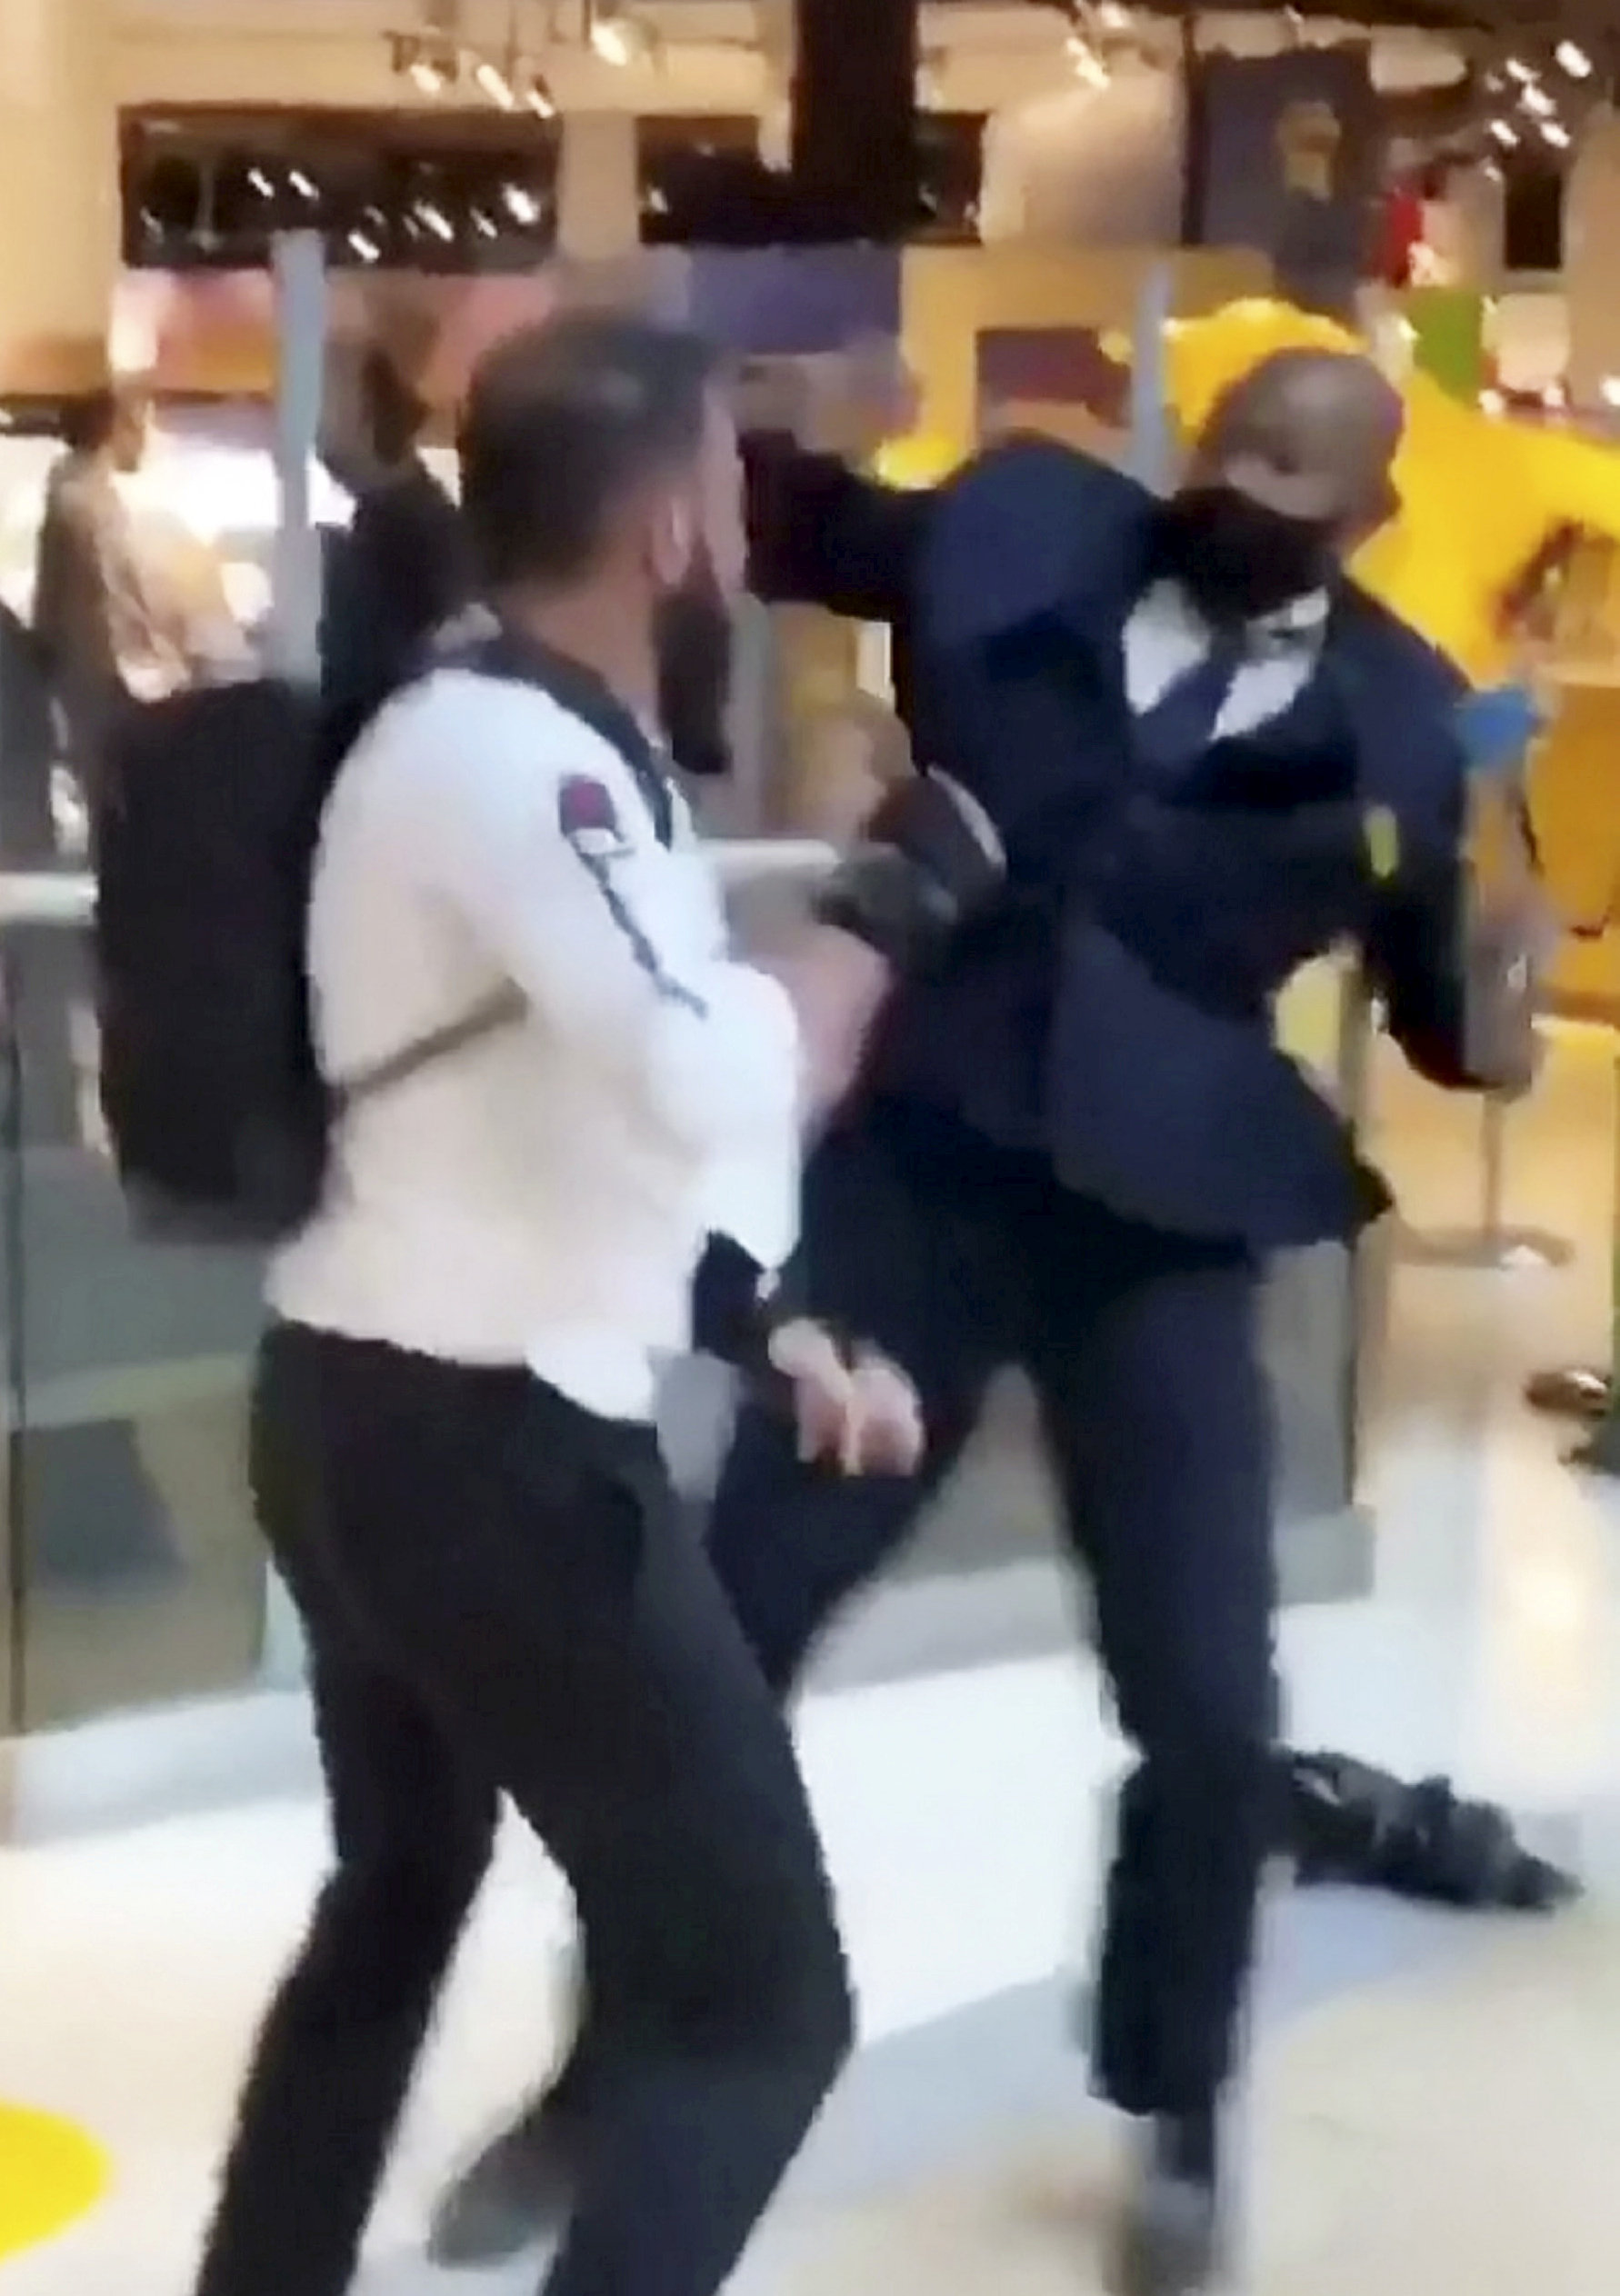 """This is the shocking moment a security guard and a shopper viciously brawled outside a Selfridges following a row about entering the store with rollerblades. The smartly-dressed security worker traded punches with the irate customer after violence erupted at Birmingham's Bull Ring shopping centre on Saturday (26/9). The pair can be seen adopting boxing stances before exchanging blows in front of stunned shoppers at the entrance of the posh department store. In the footage, obtained by website Birmz Is Grime, one man can be heard saying """"chill man"""" before the video ends with two burly men continuing to swing punches."""